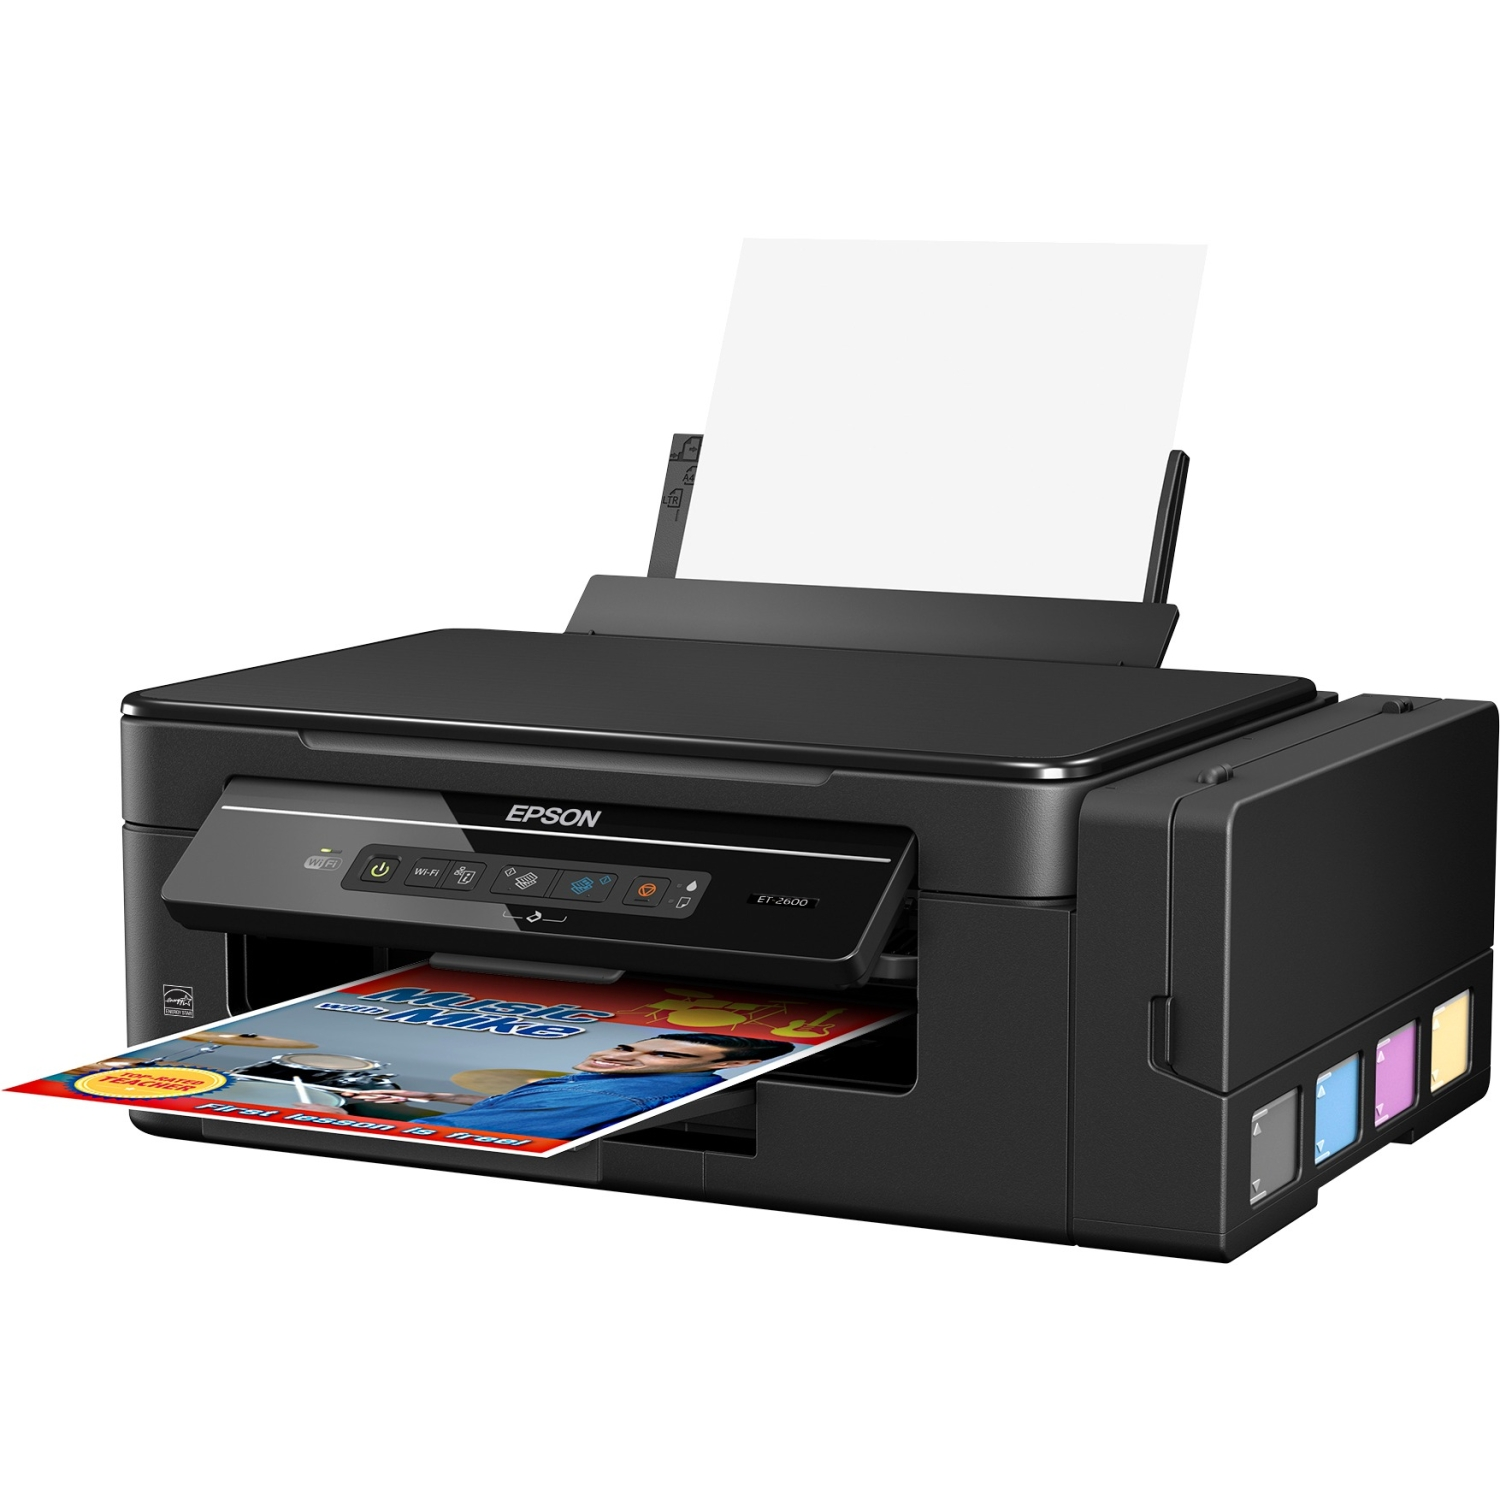 Epson Expression ET-2600 EcoTank All-in-One Supertank Printer